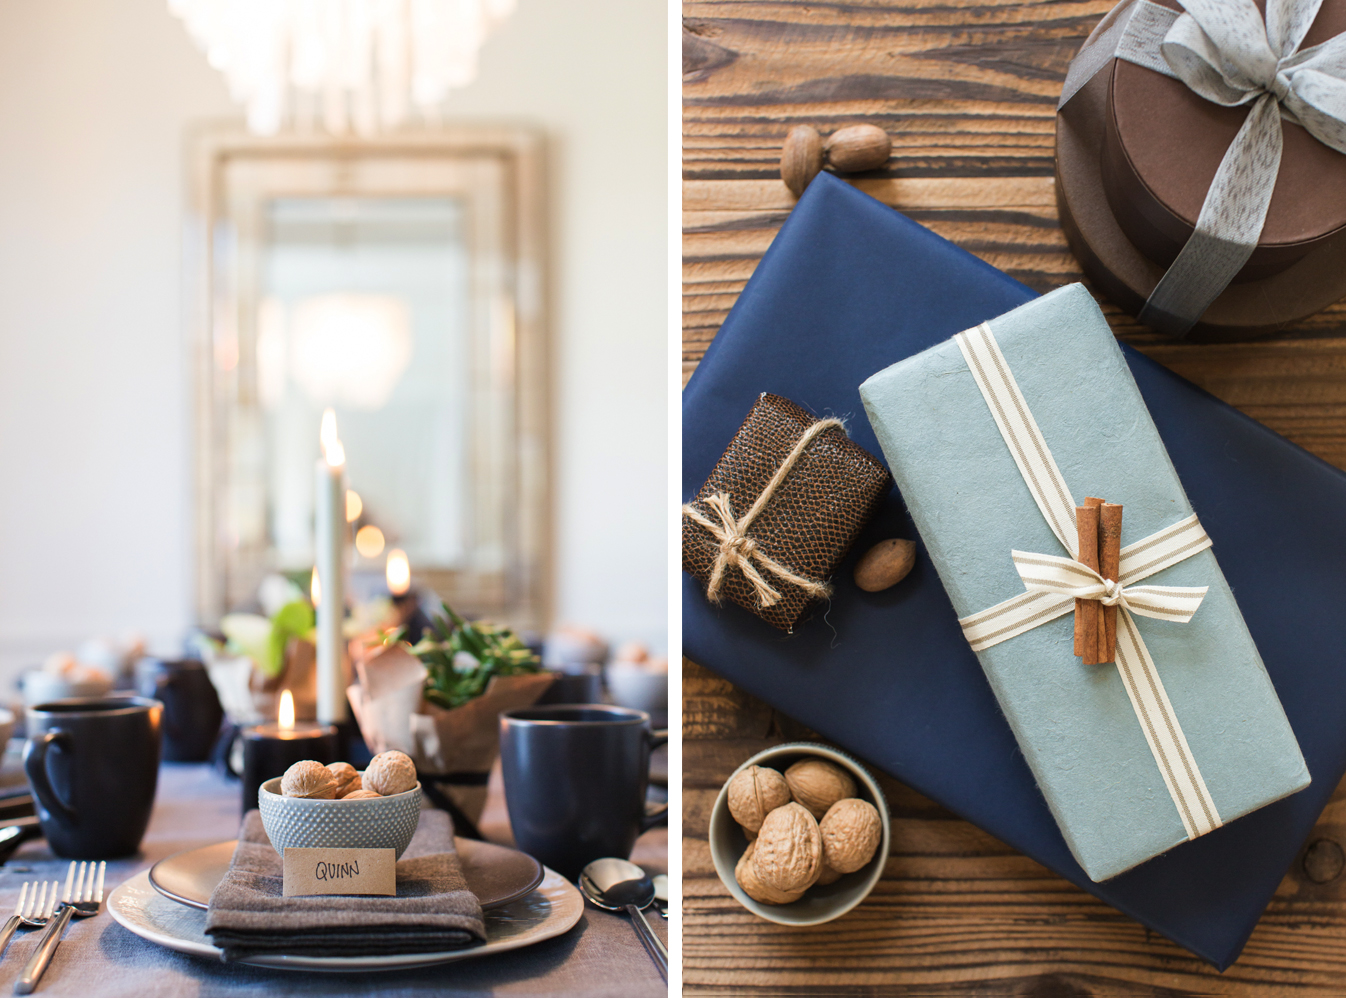 holiday_table_setting_masculine_farm_to_table_succulent_walnuts_hanaluluco_charliejuliet.jpg